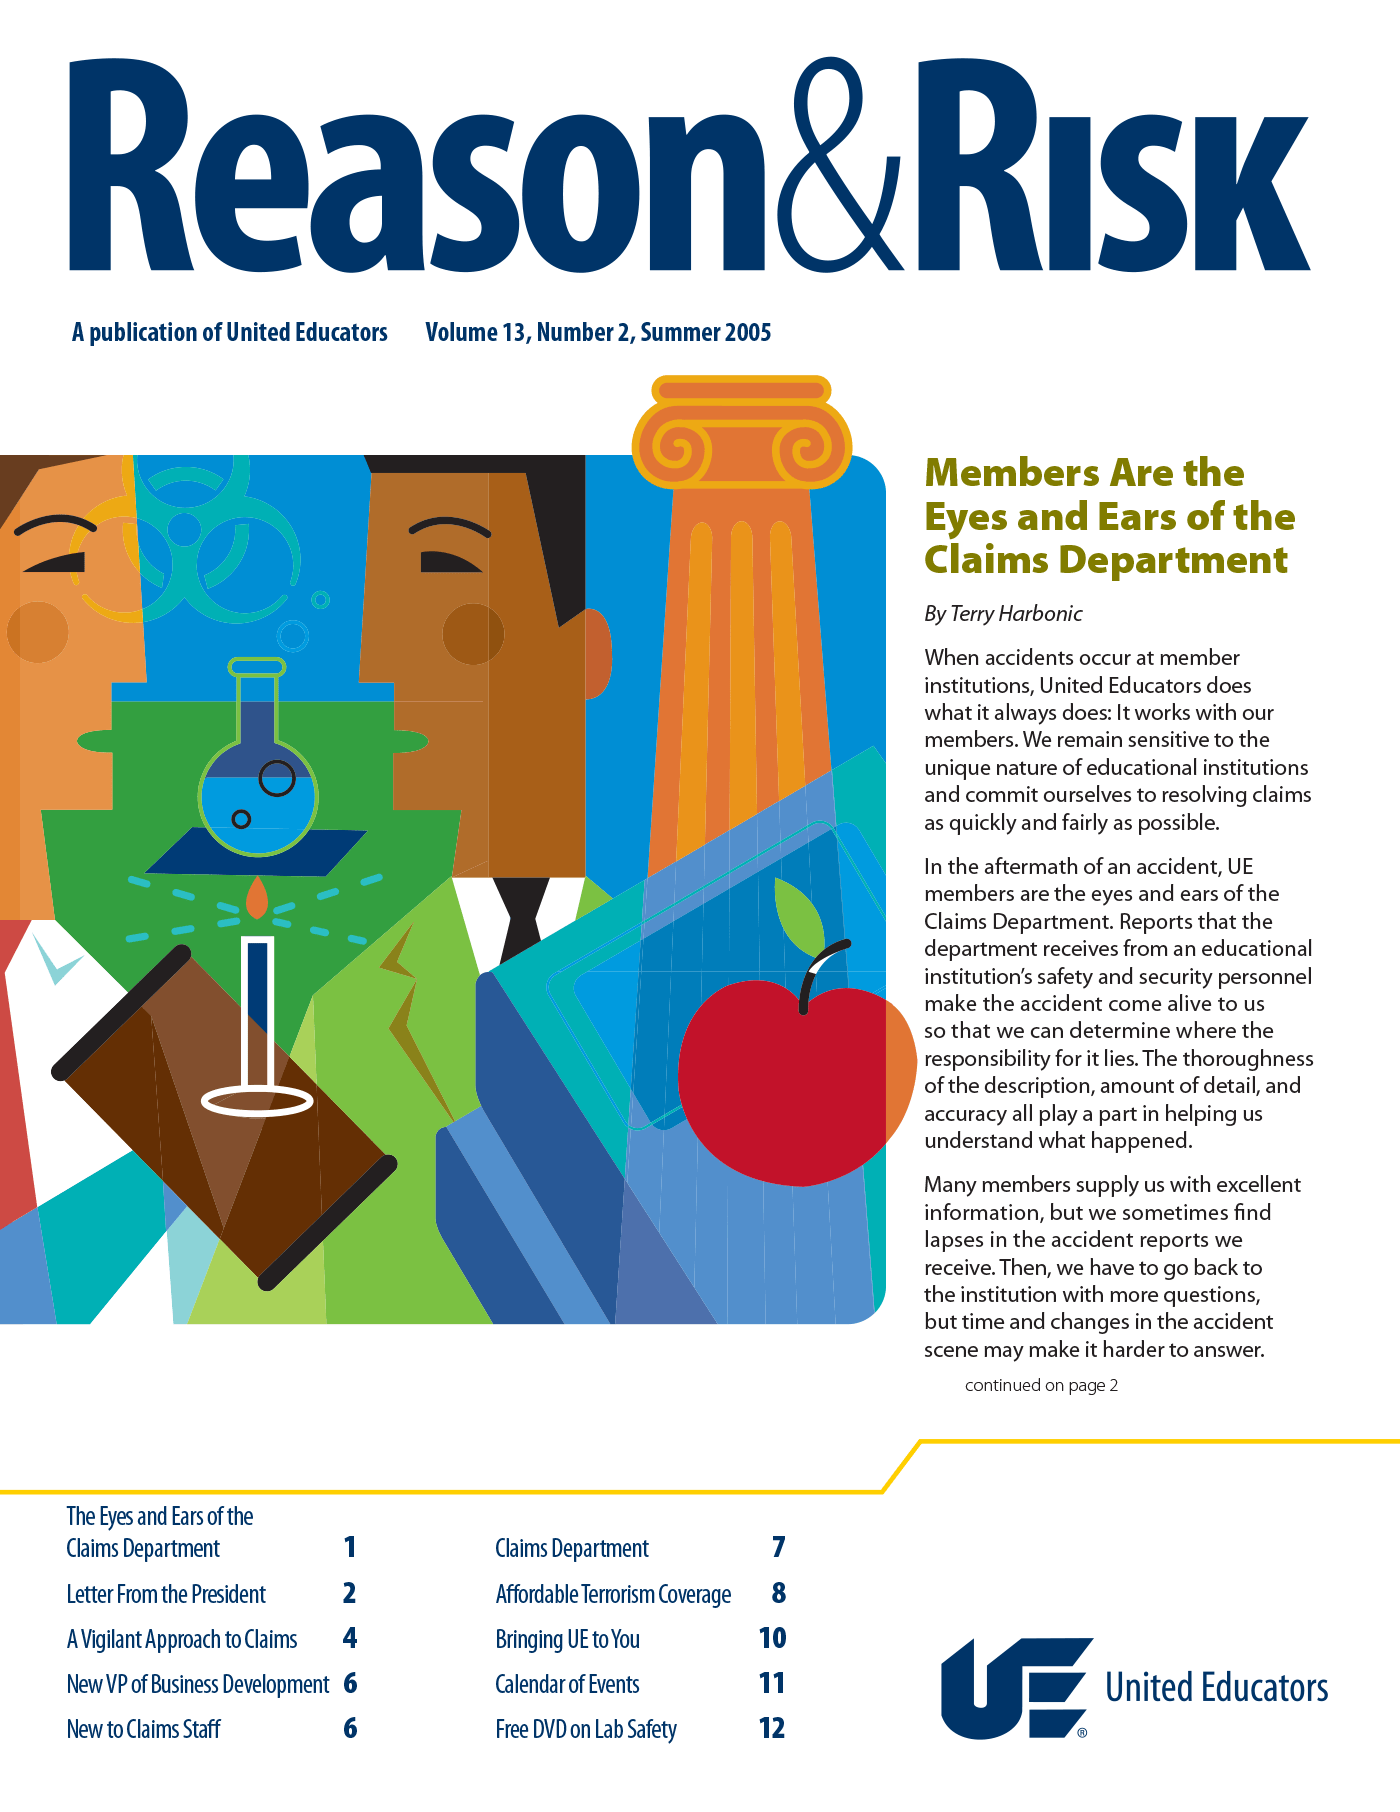 Reason & Risk Cover Image